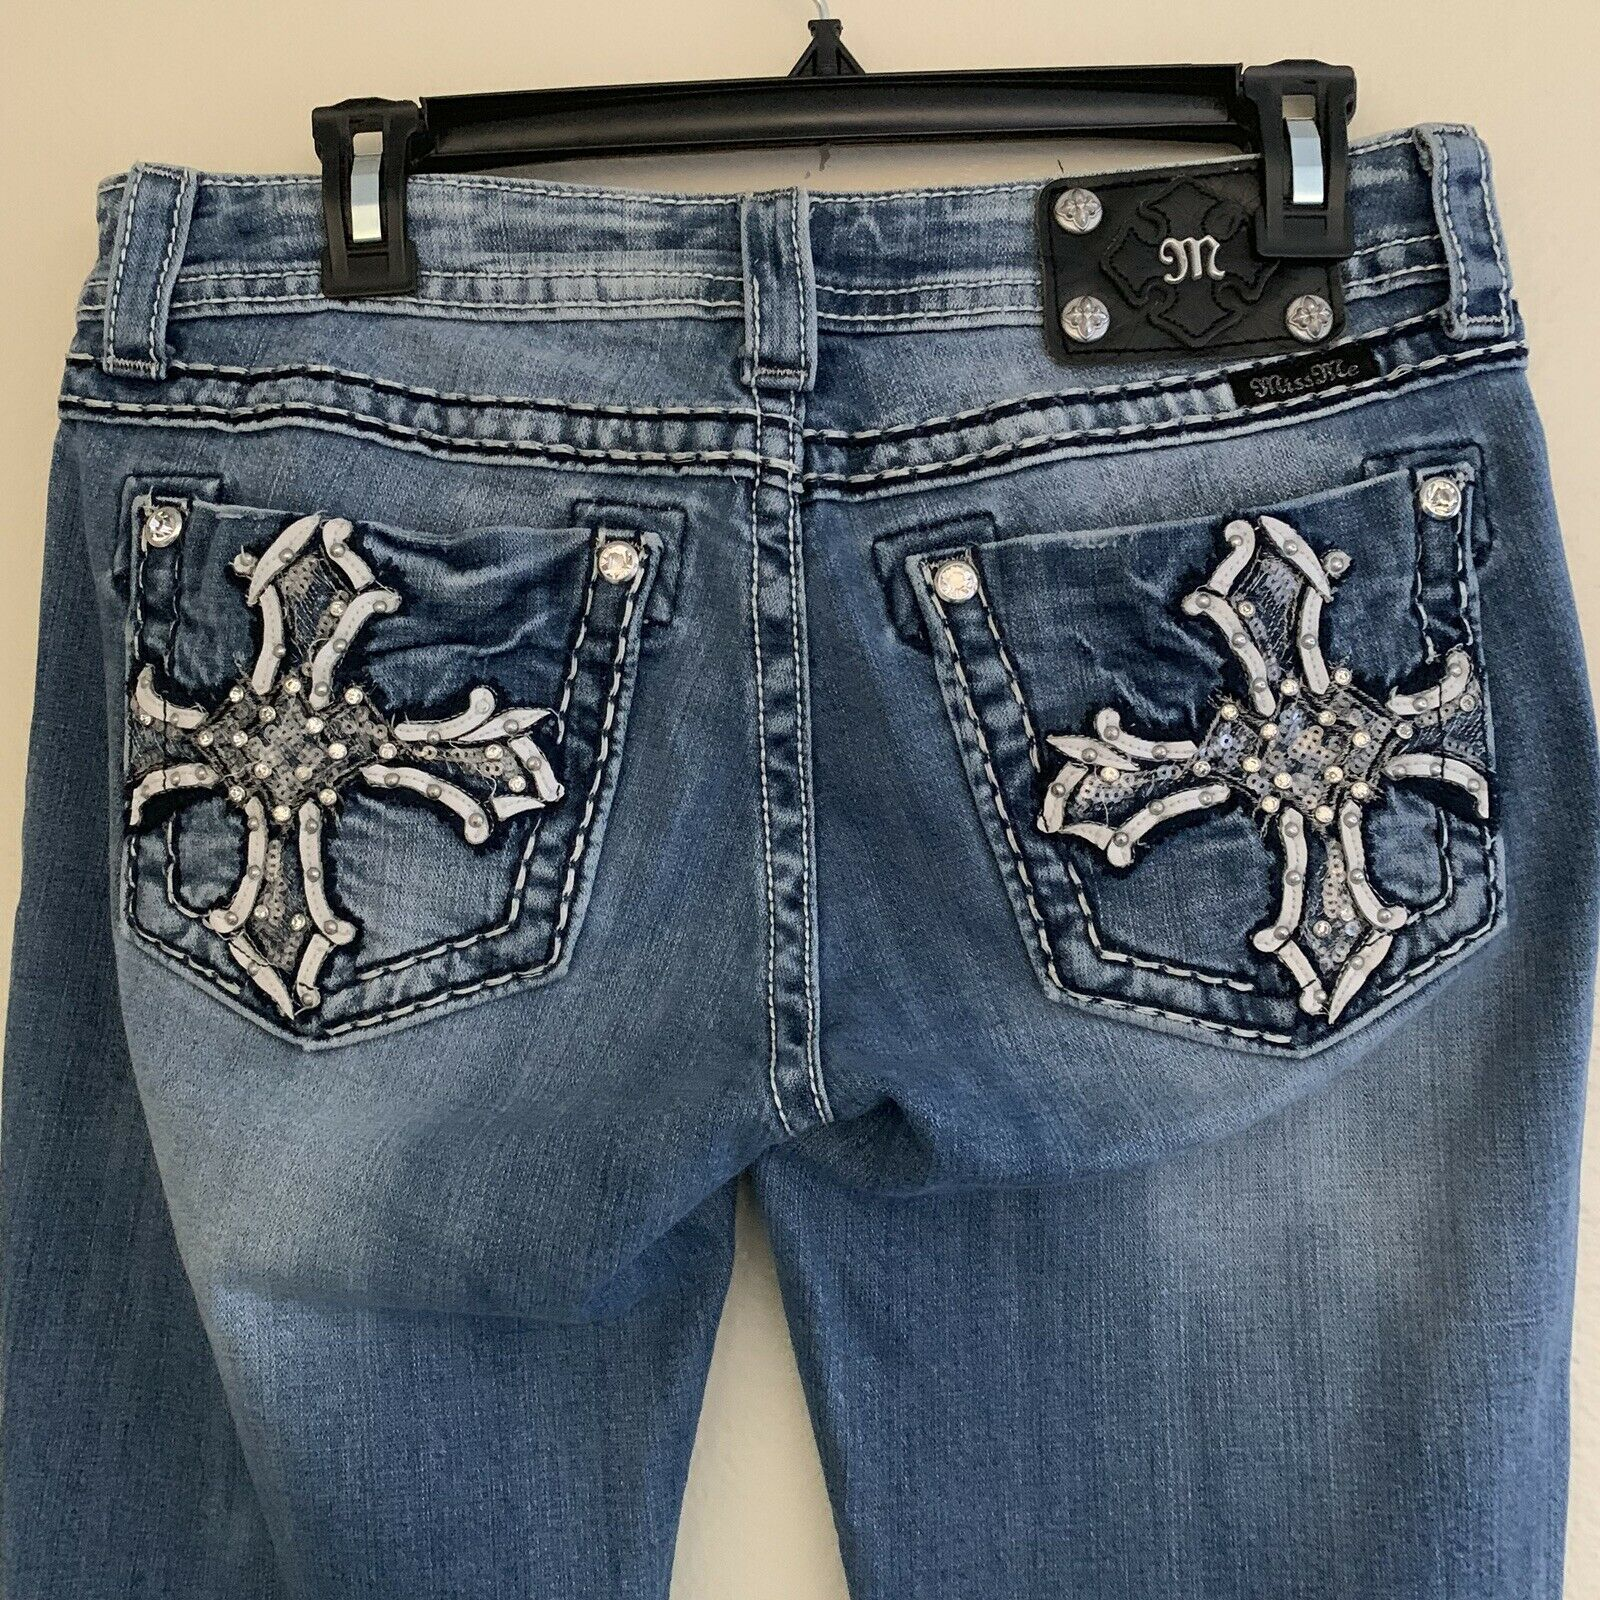 Miss me jeans size 29 jeans woman boot cut cross bling style JP5854B embellished